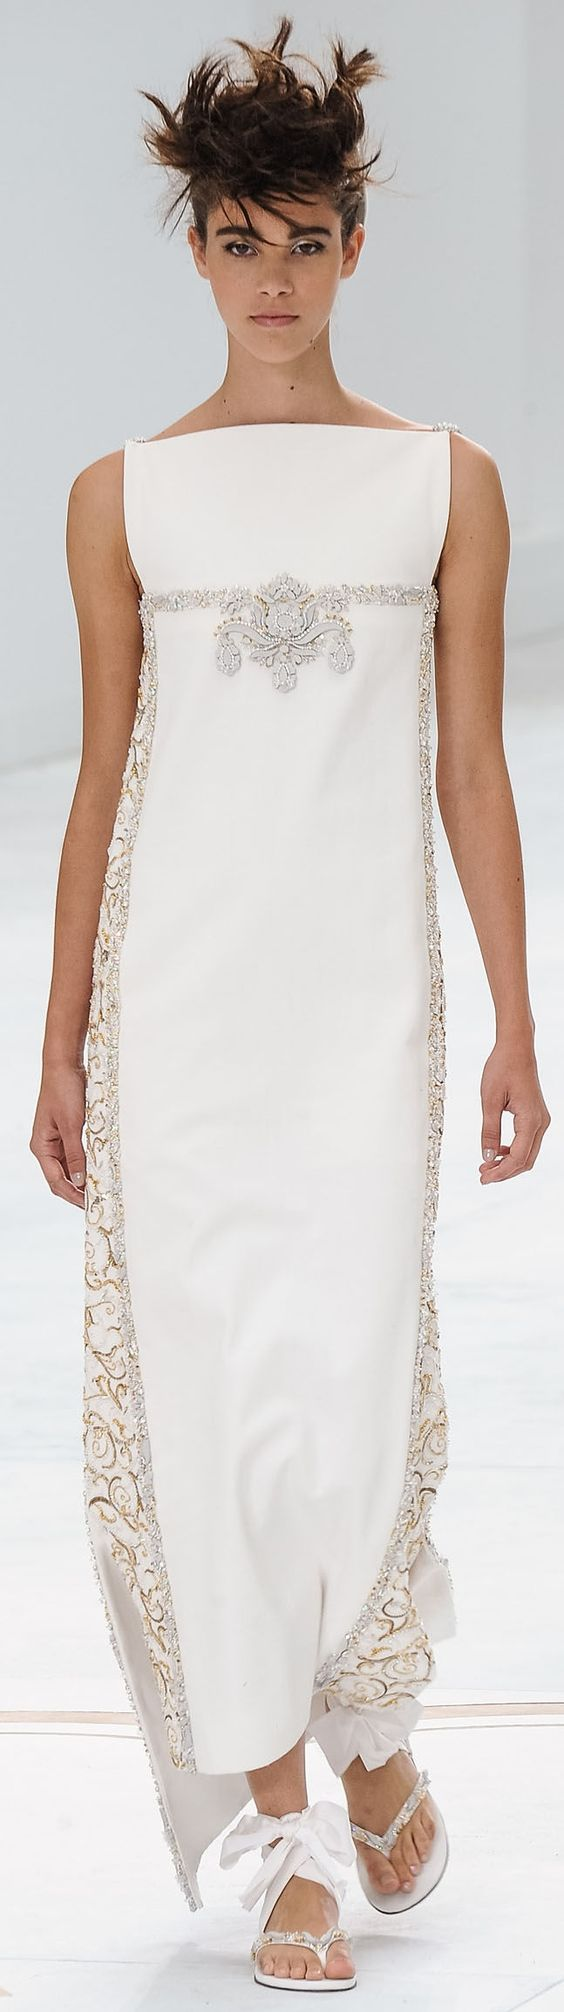 Chanel Couture F/W 2014-2015: